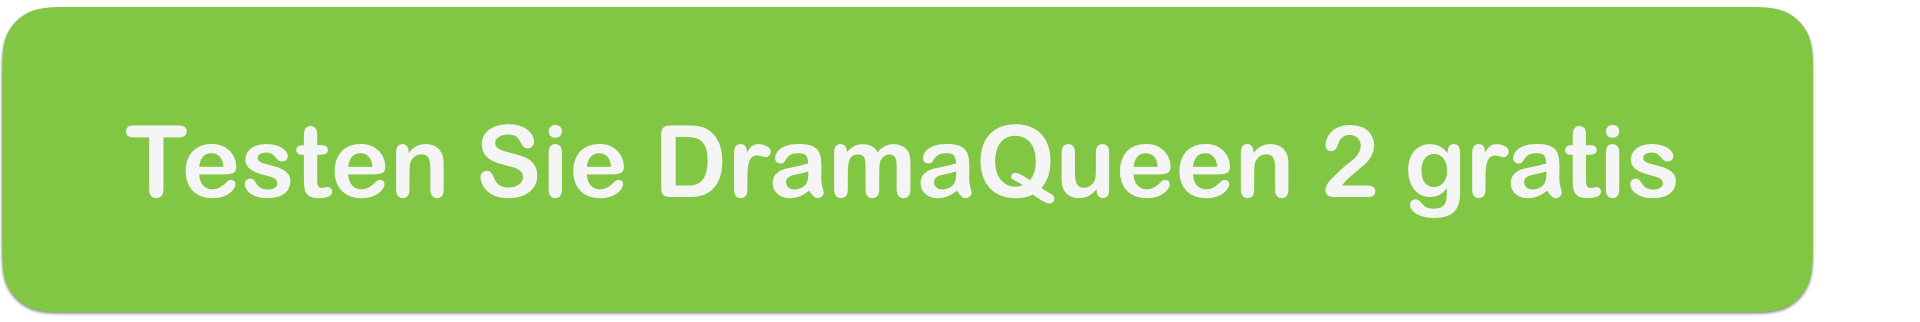 Download DramaQueen 2